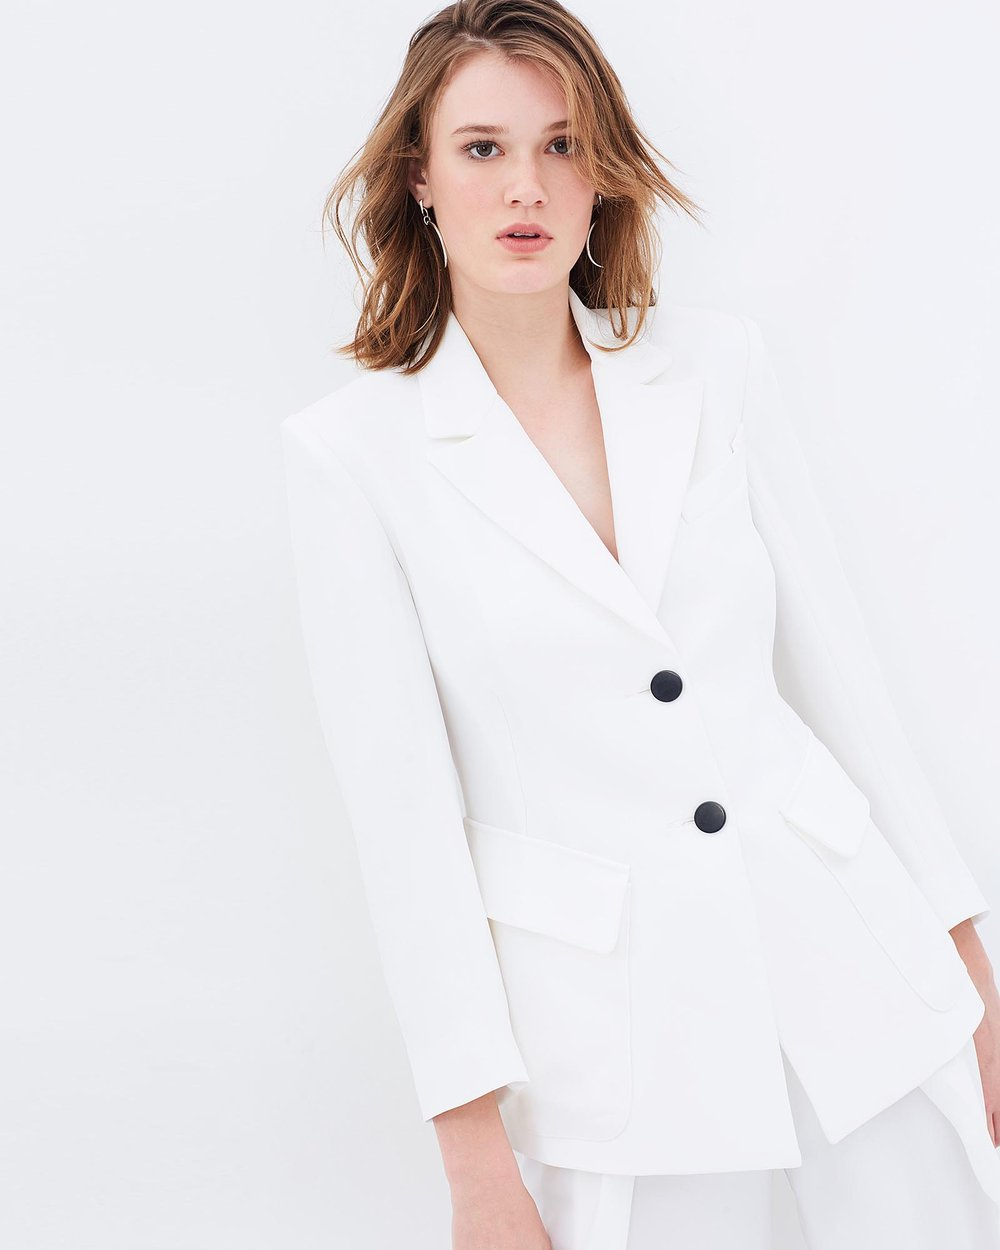 Ecru Crepe Suitor Jacket By Bianca Spender Online The Iconic Tailored With Twin Buttons Australia